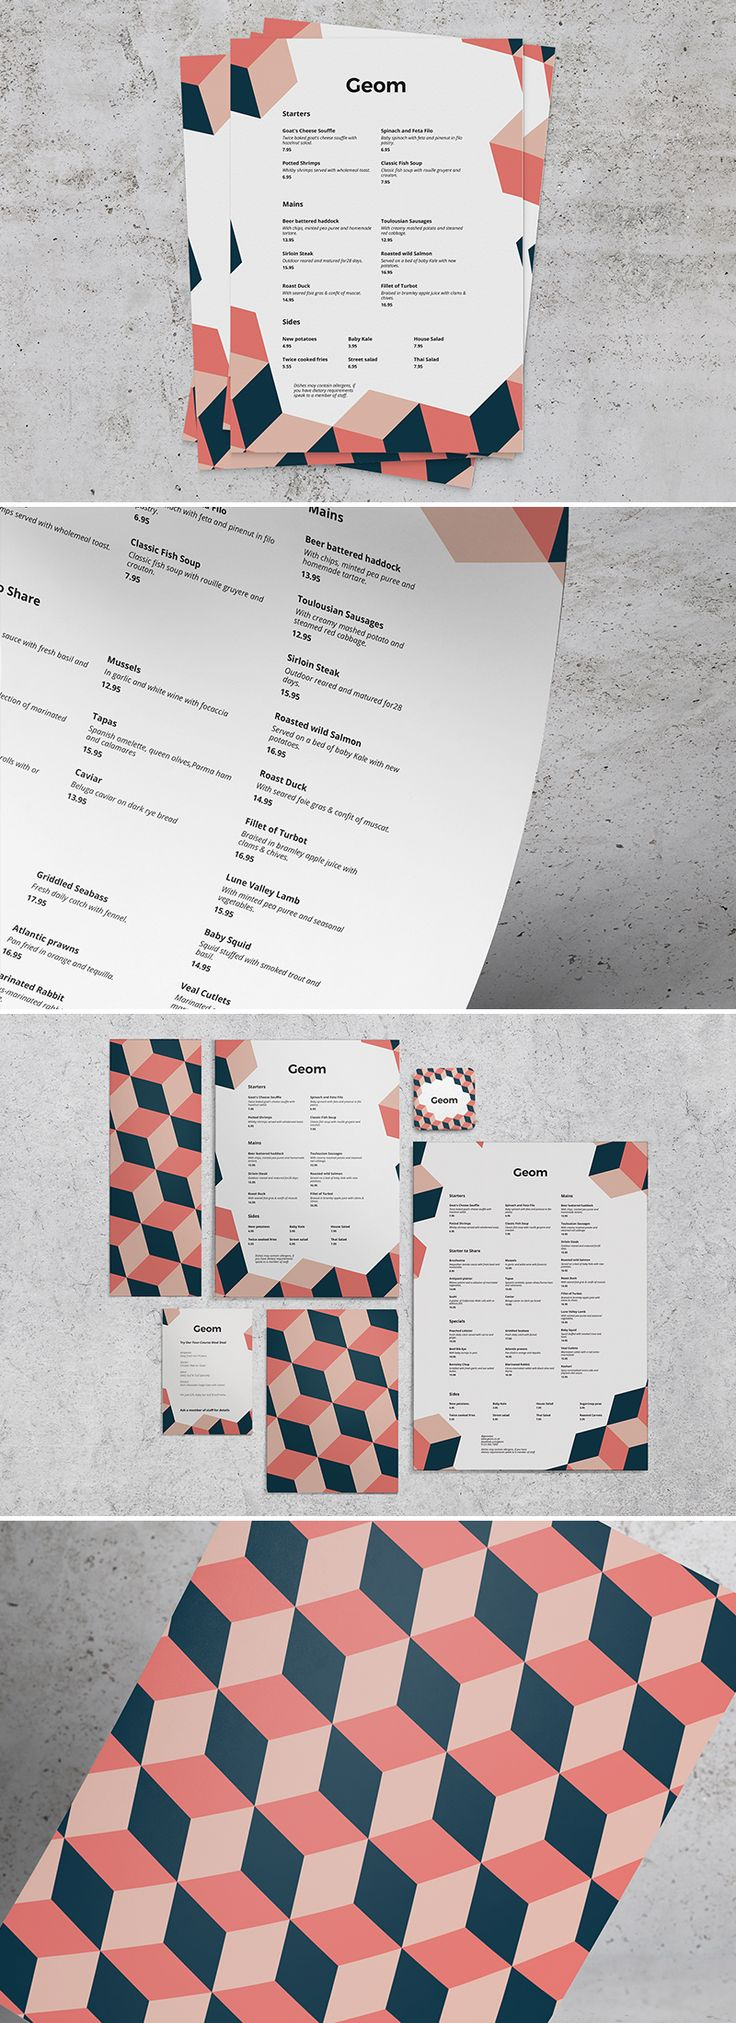 Geom - A striking geometric menu design with bold colours and a quirky layout style. From Print Waiter. #menu #geometric #quirky